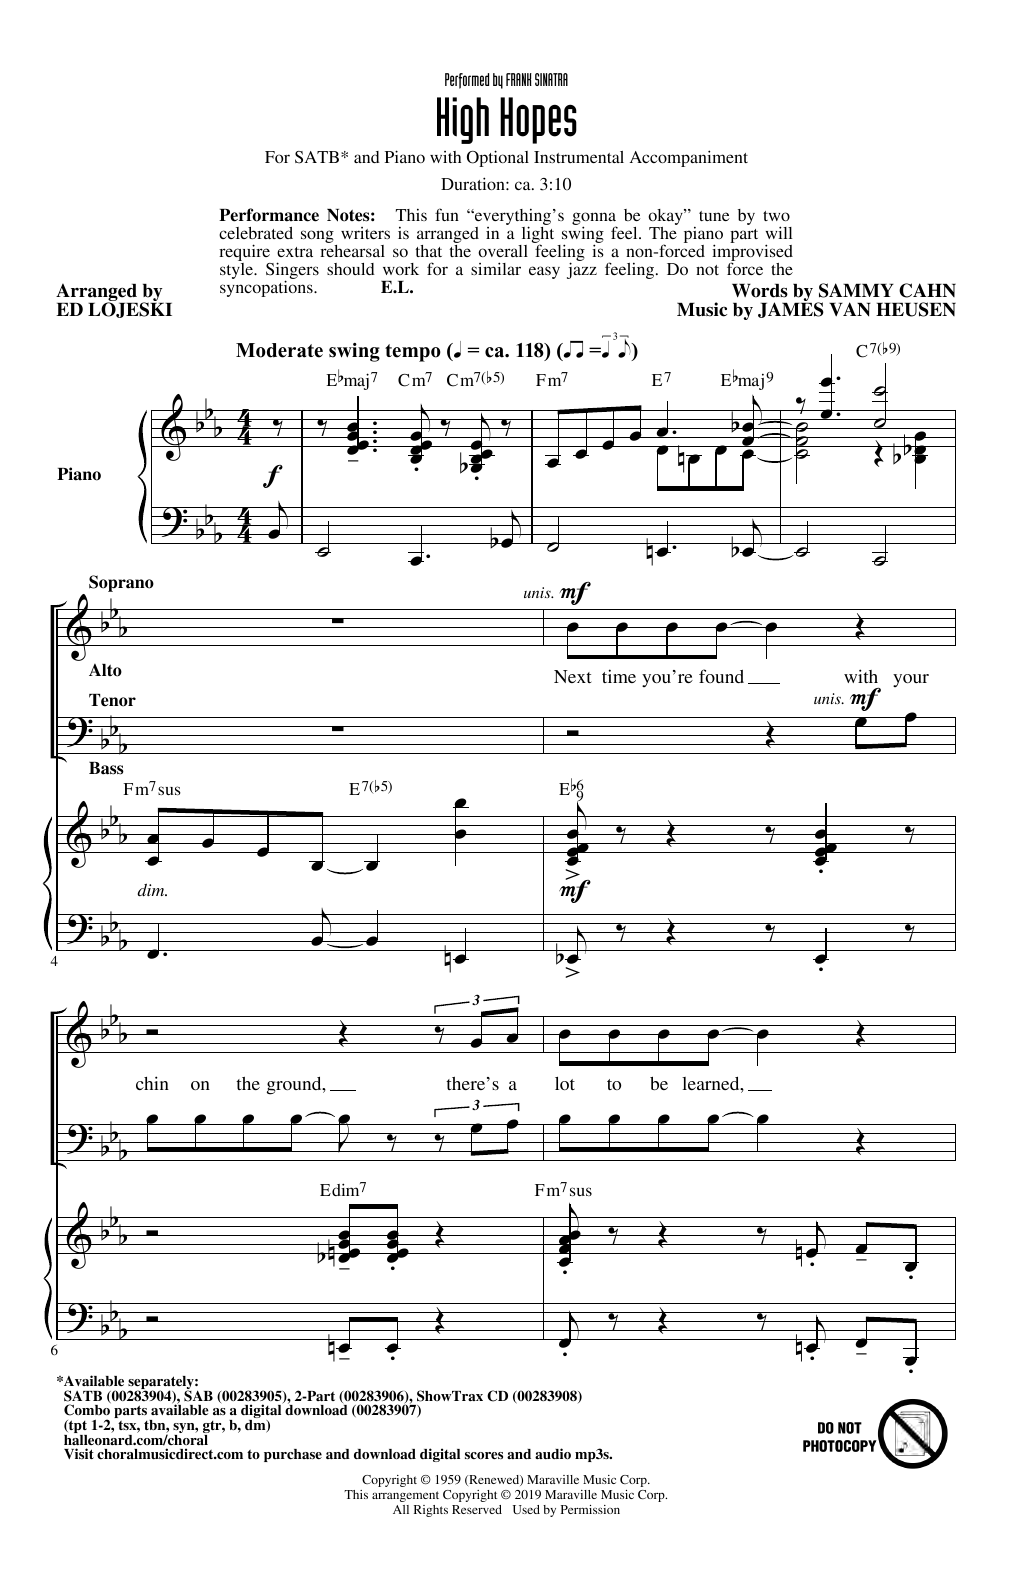 High Hopes (arr. Ed Lojeski) (SATB Choir)